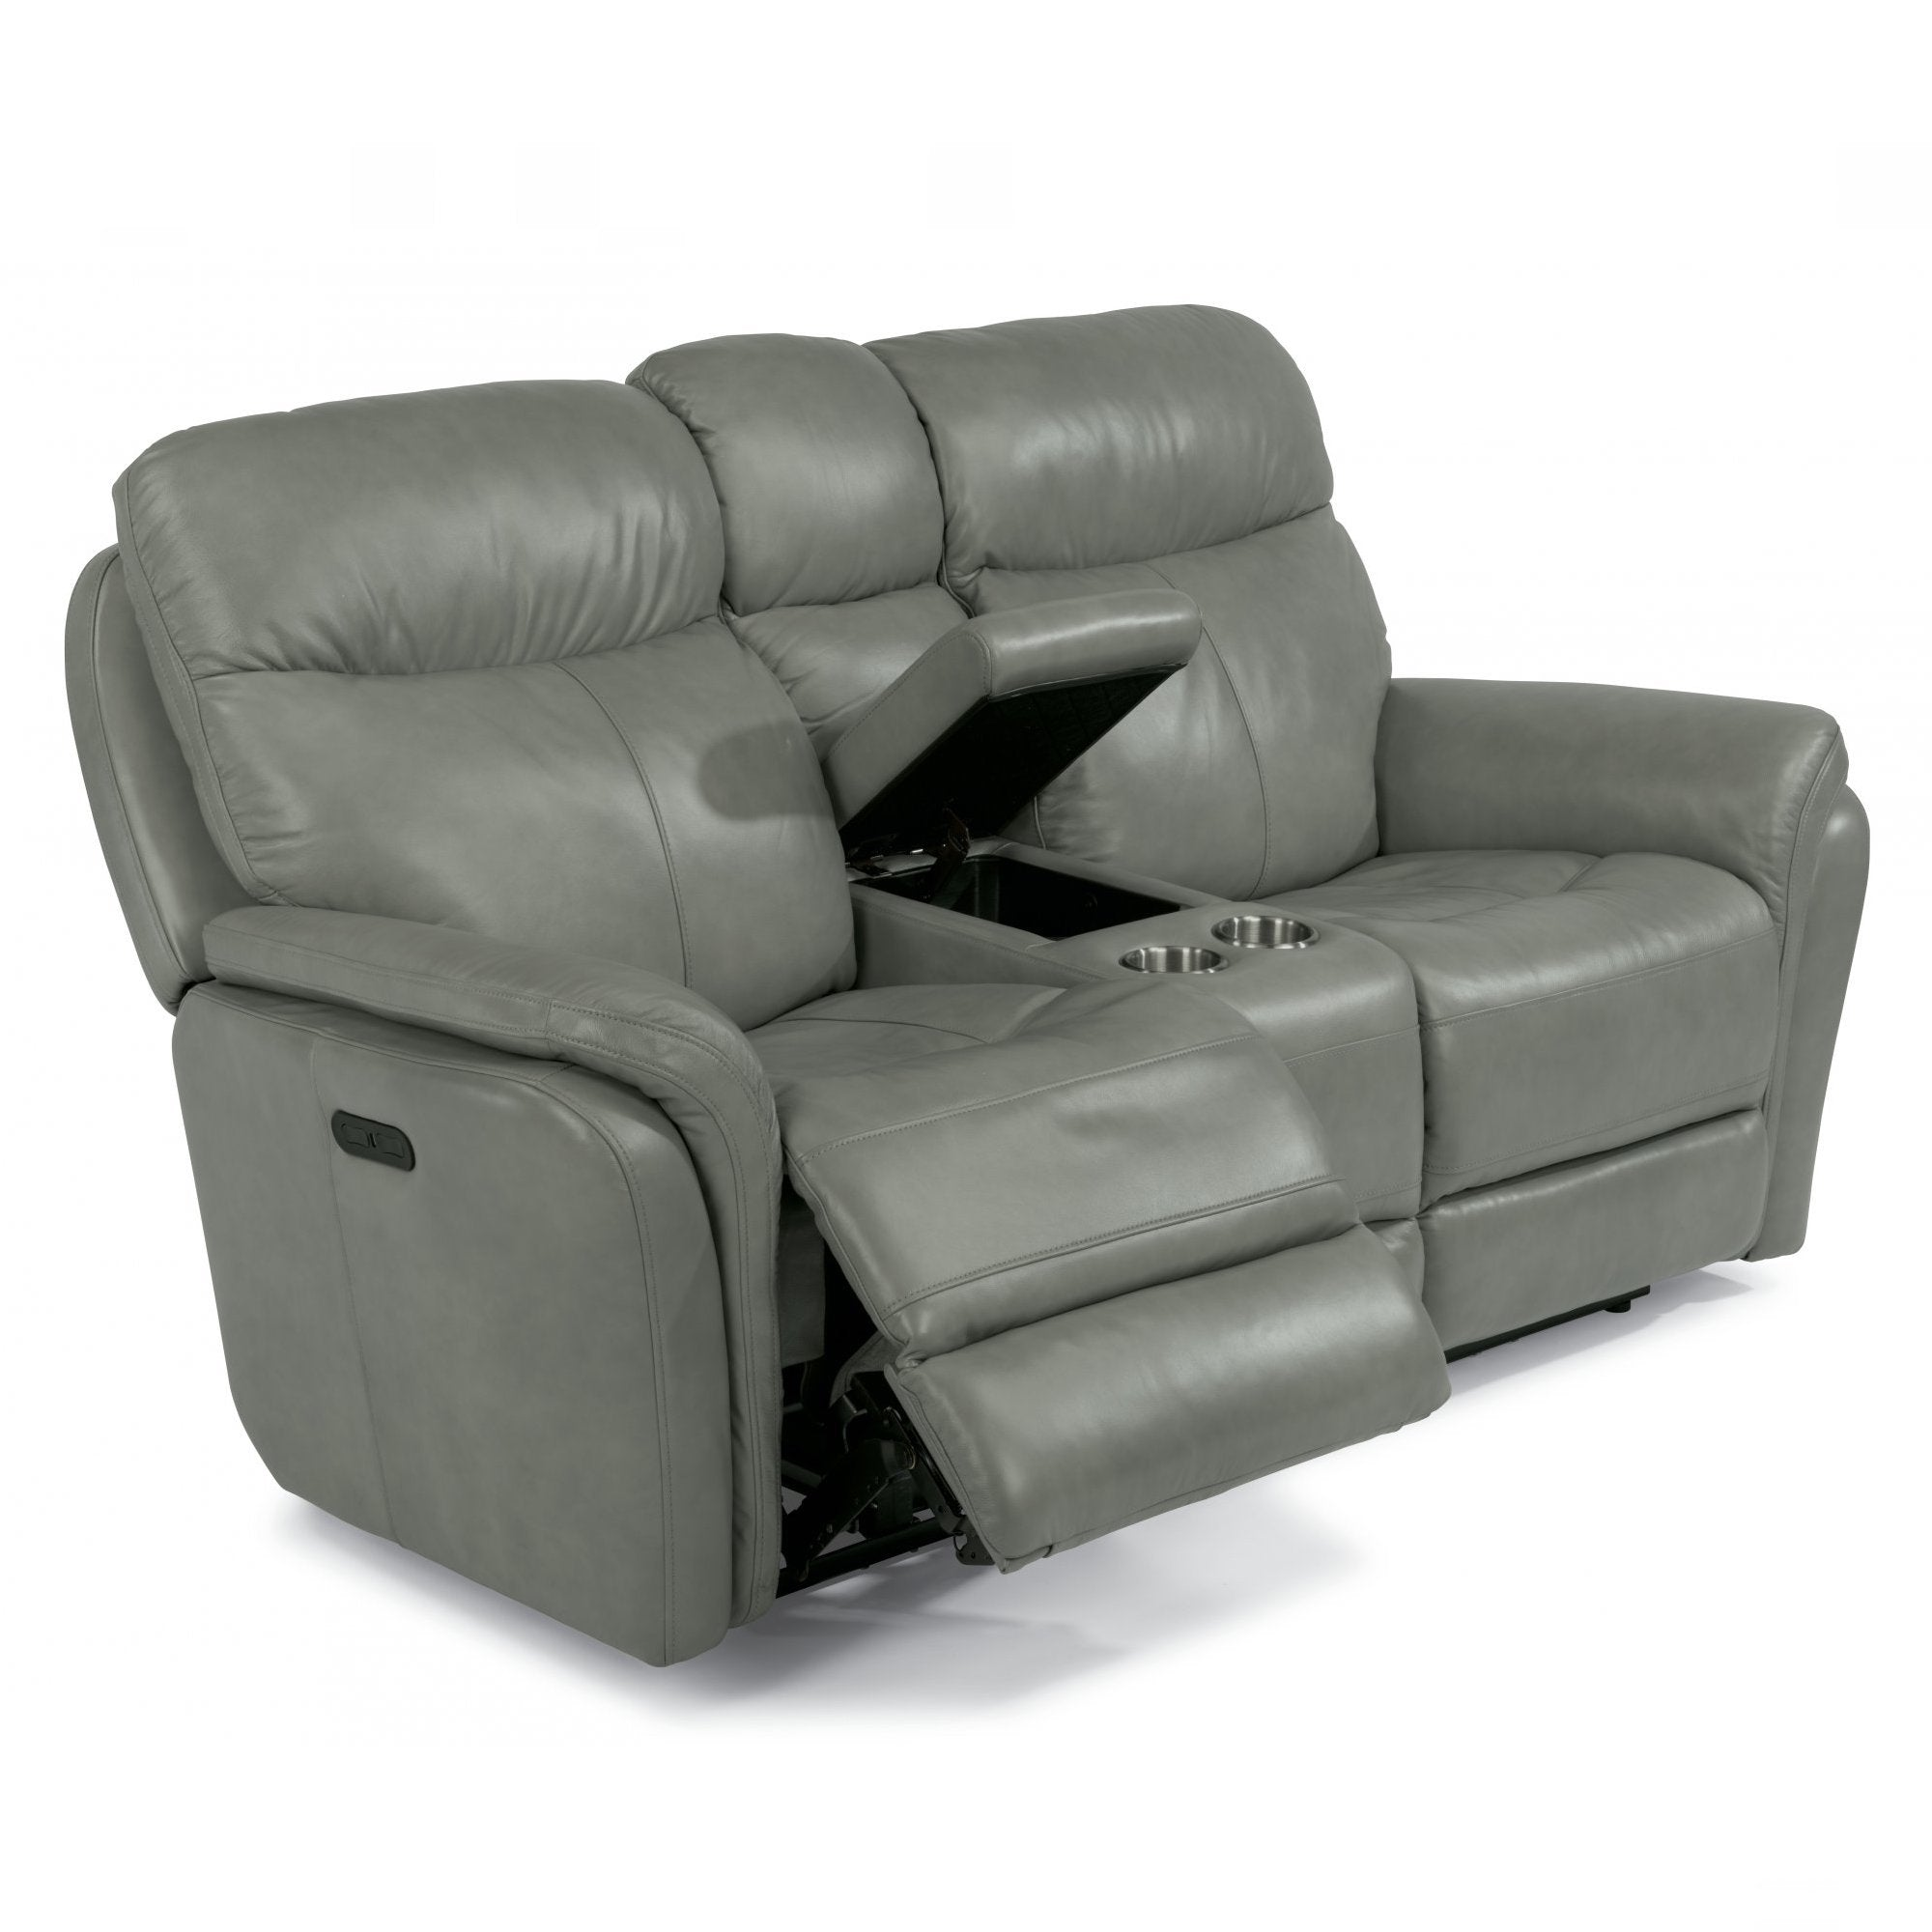 Zoey Leather Power Reclining Loveseat With Console By